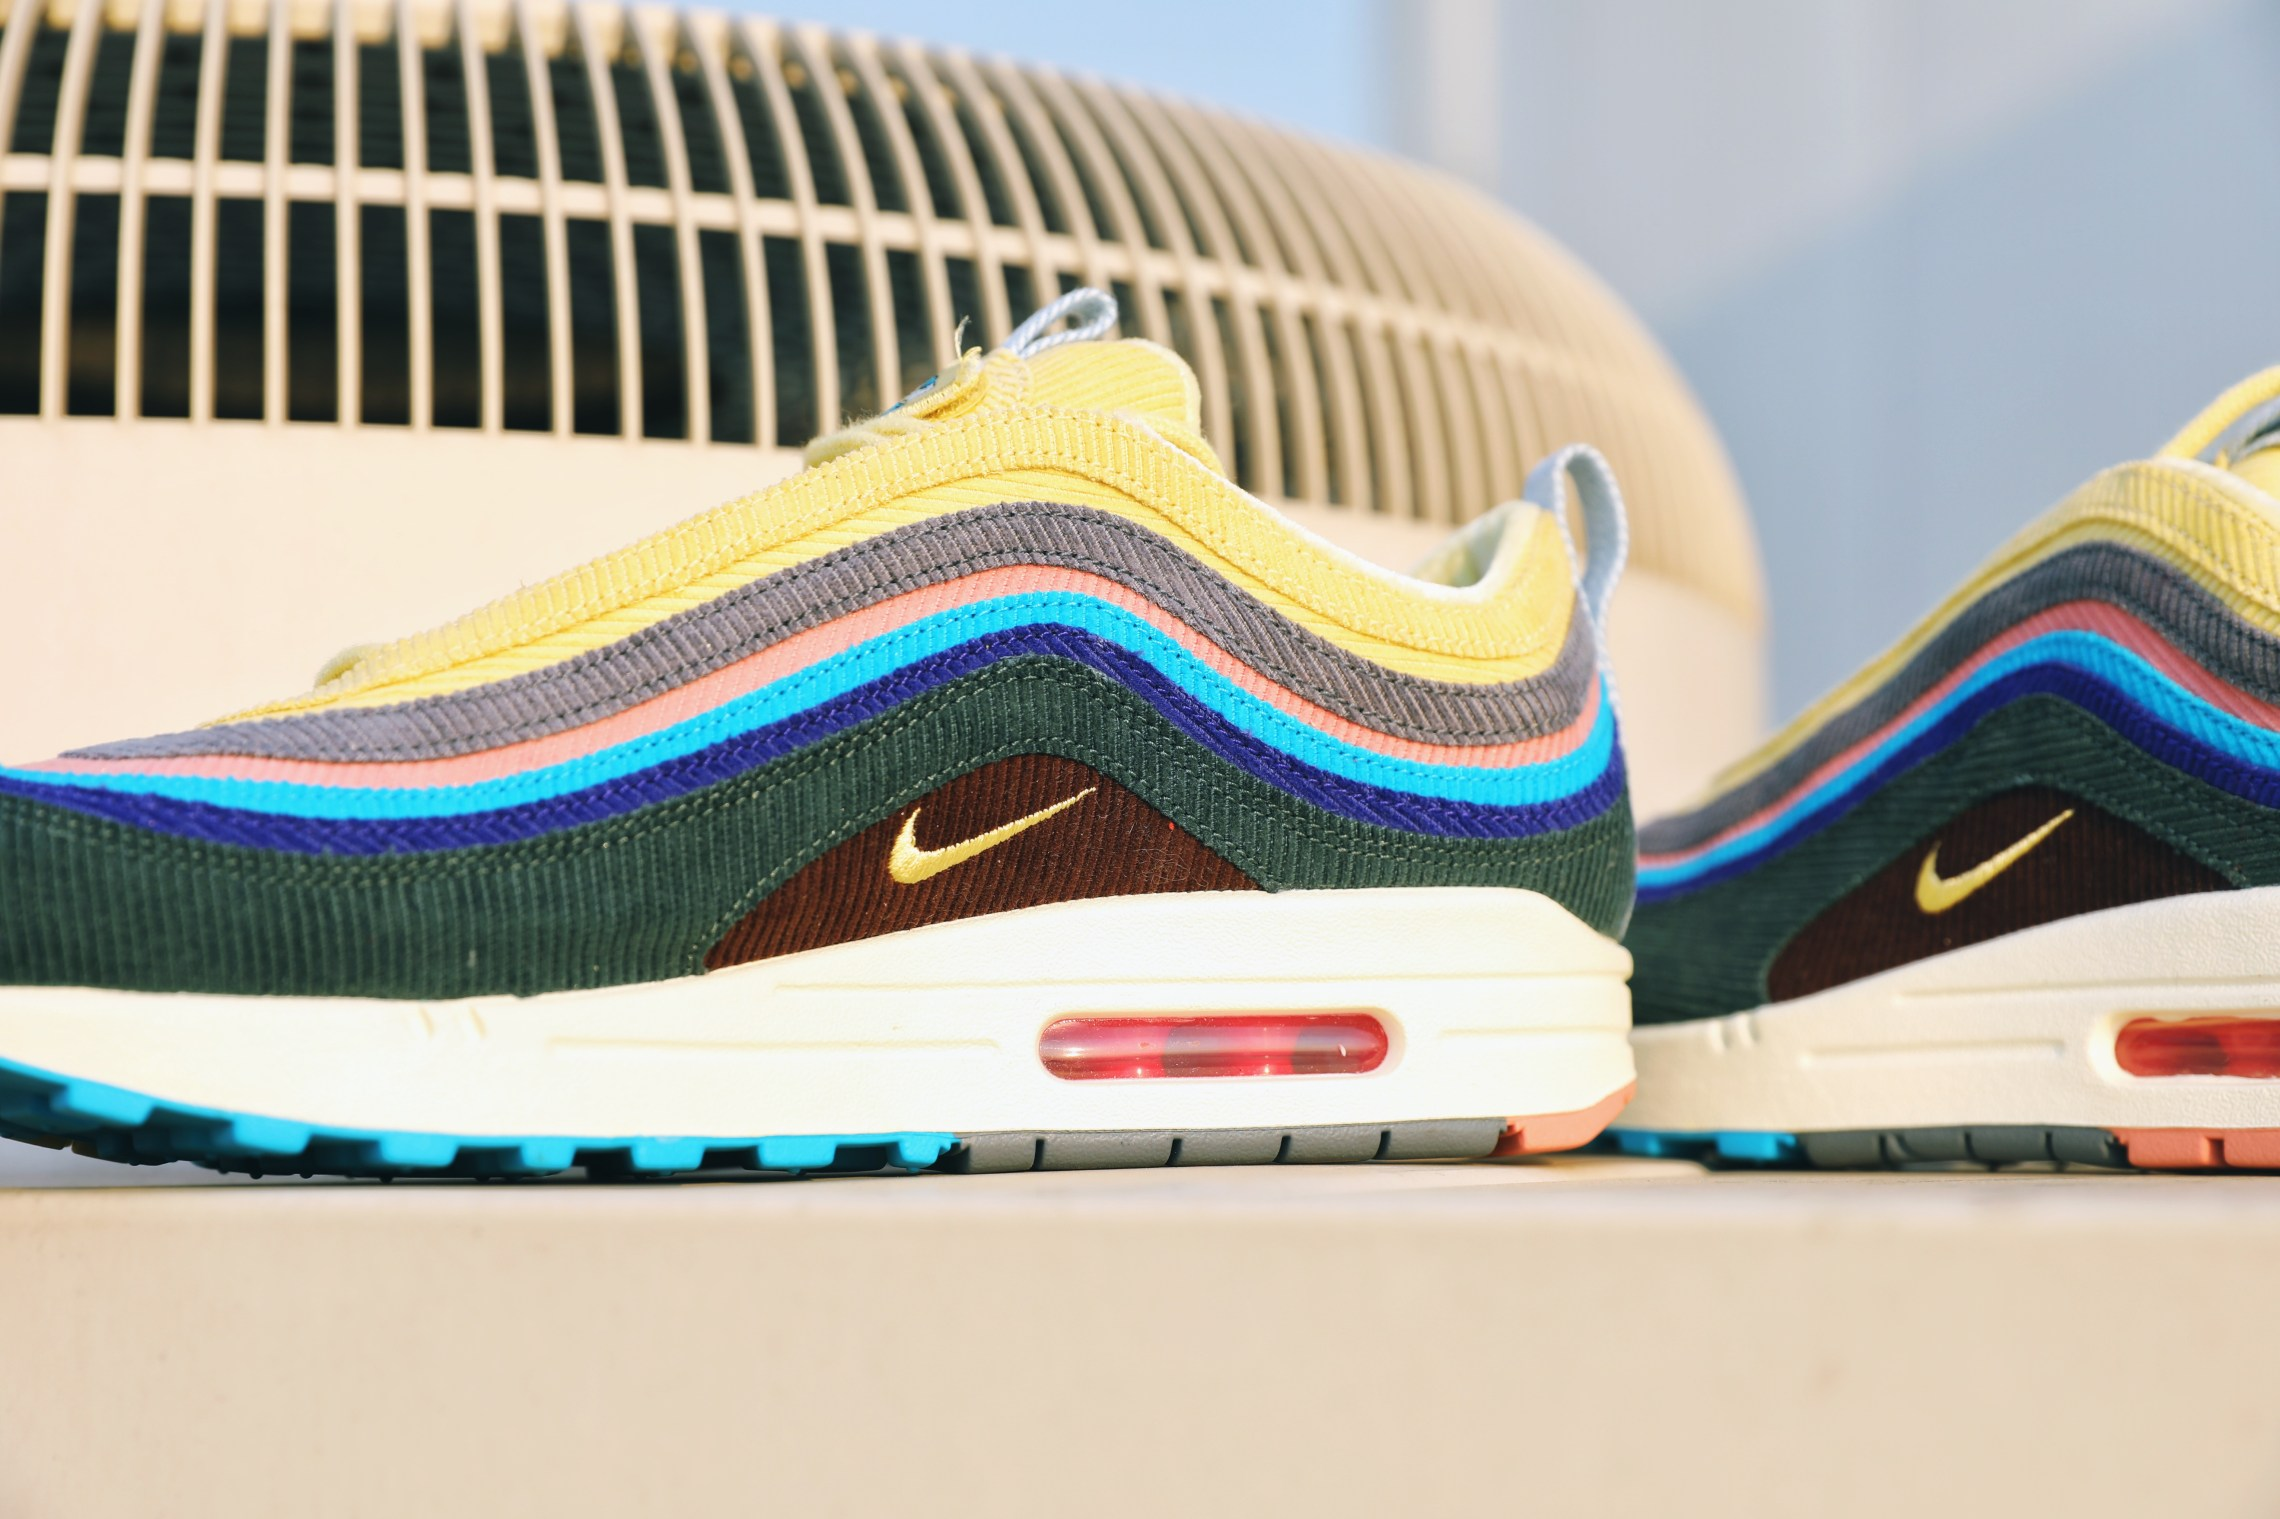 new products af5e3 c4ace Nike Air Max 197 By Sean Wotherspoon (4) – KENLU.net